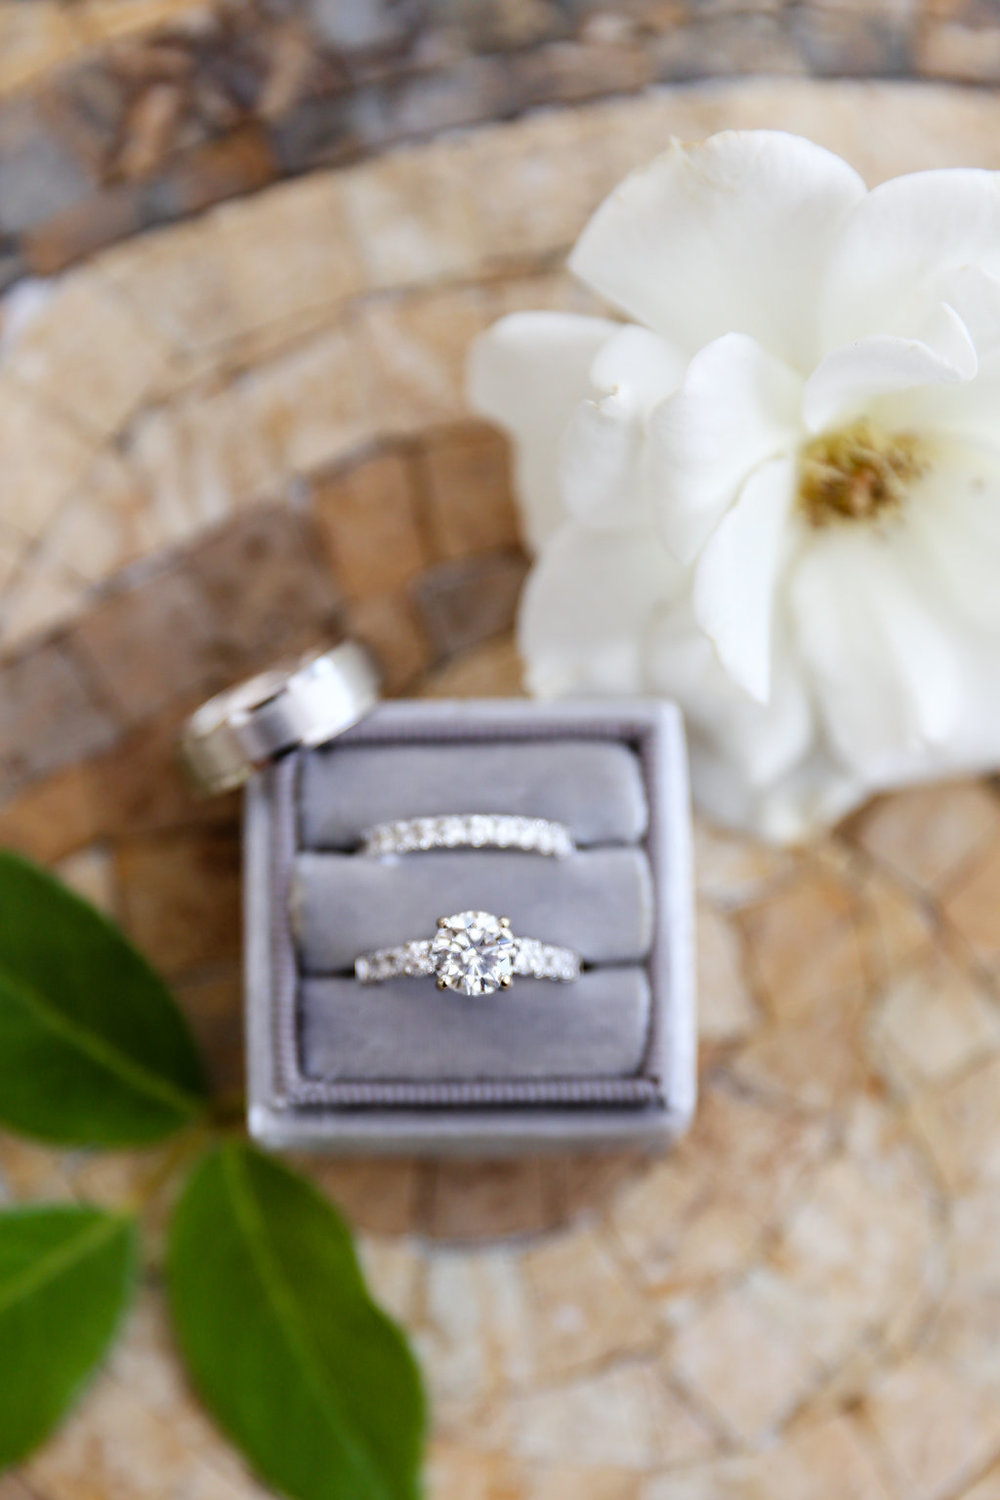 Gorgeous Solitaire Wedding Rings - Gorgeous Seal Beach Wedding Venue - Old Country Club Wedding